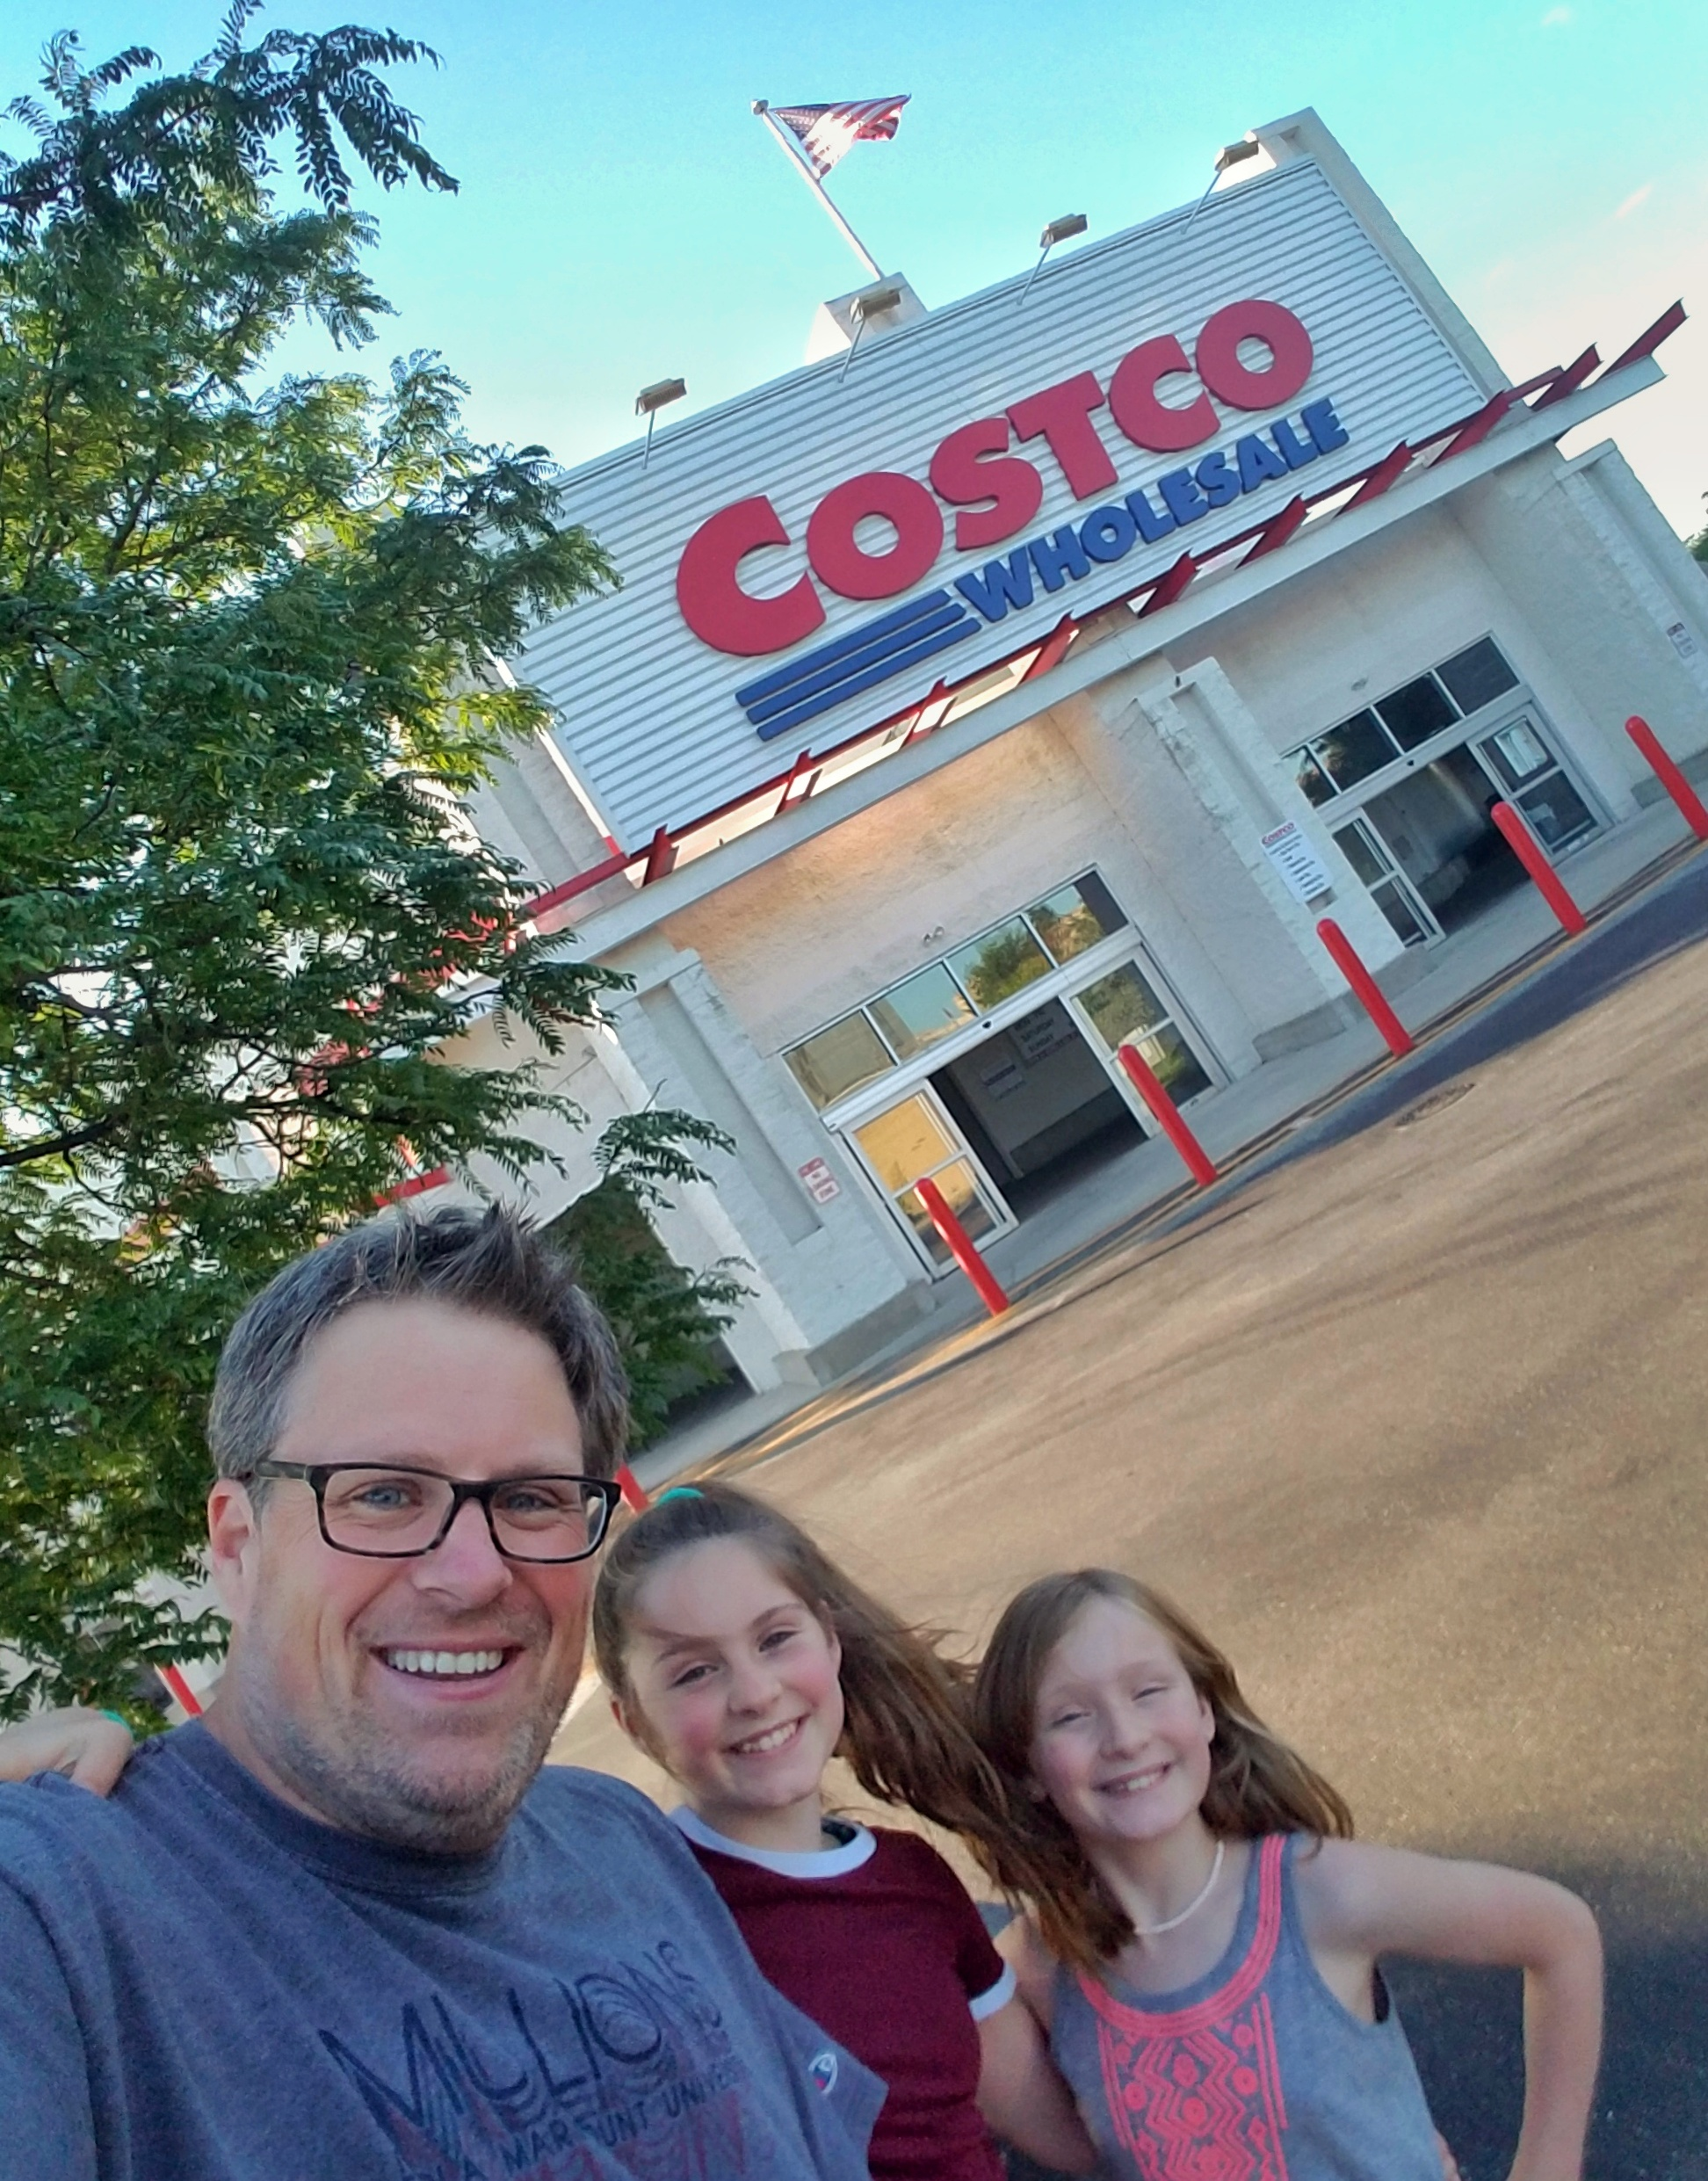 shopping at Costco with kids samples Costco